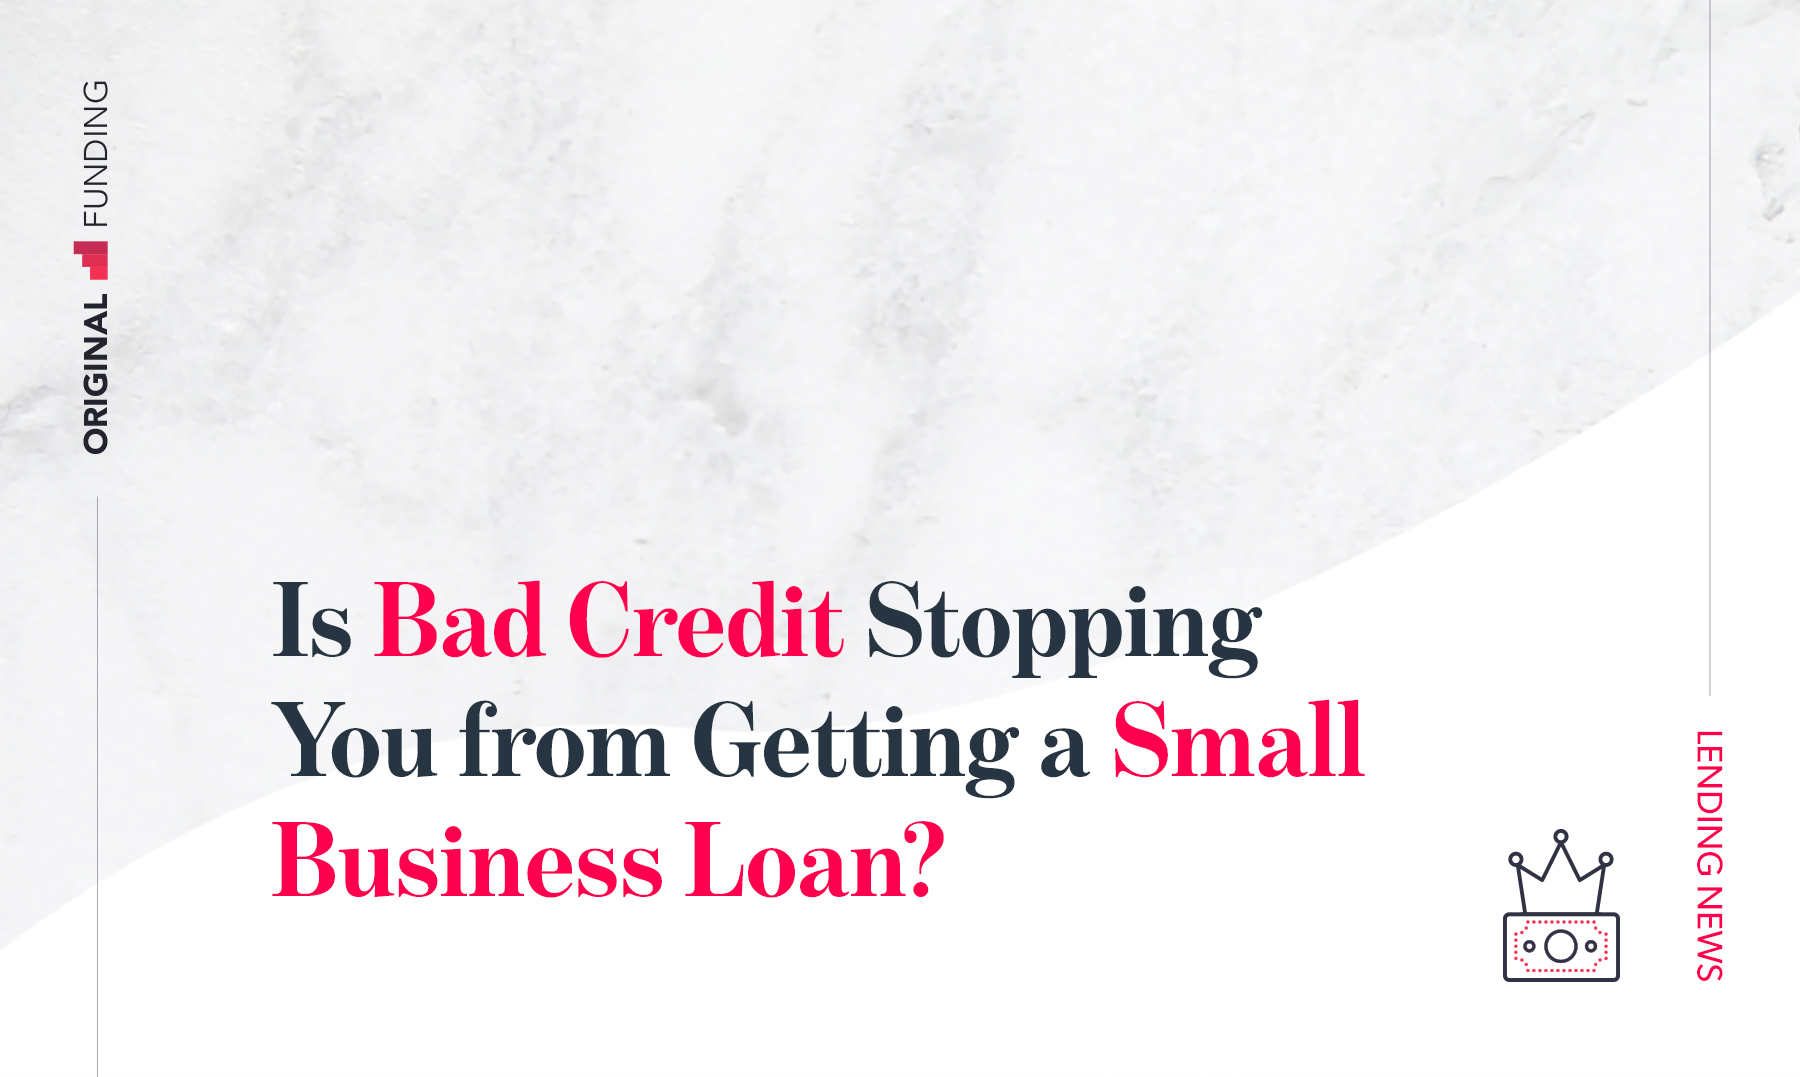 Is Bad Credit Stopping You from Getting a Small Business Loan?